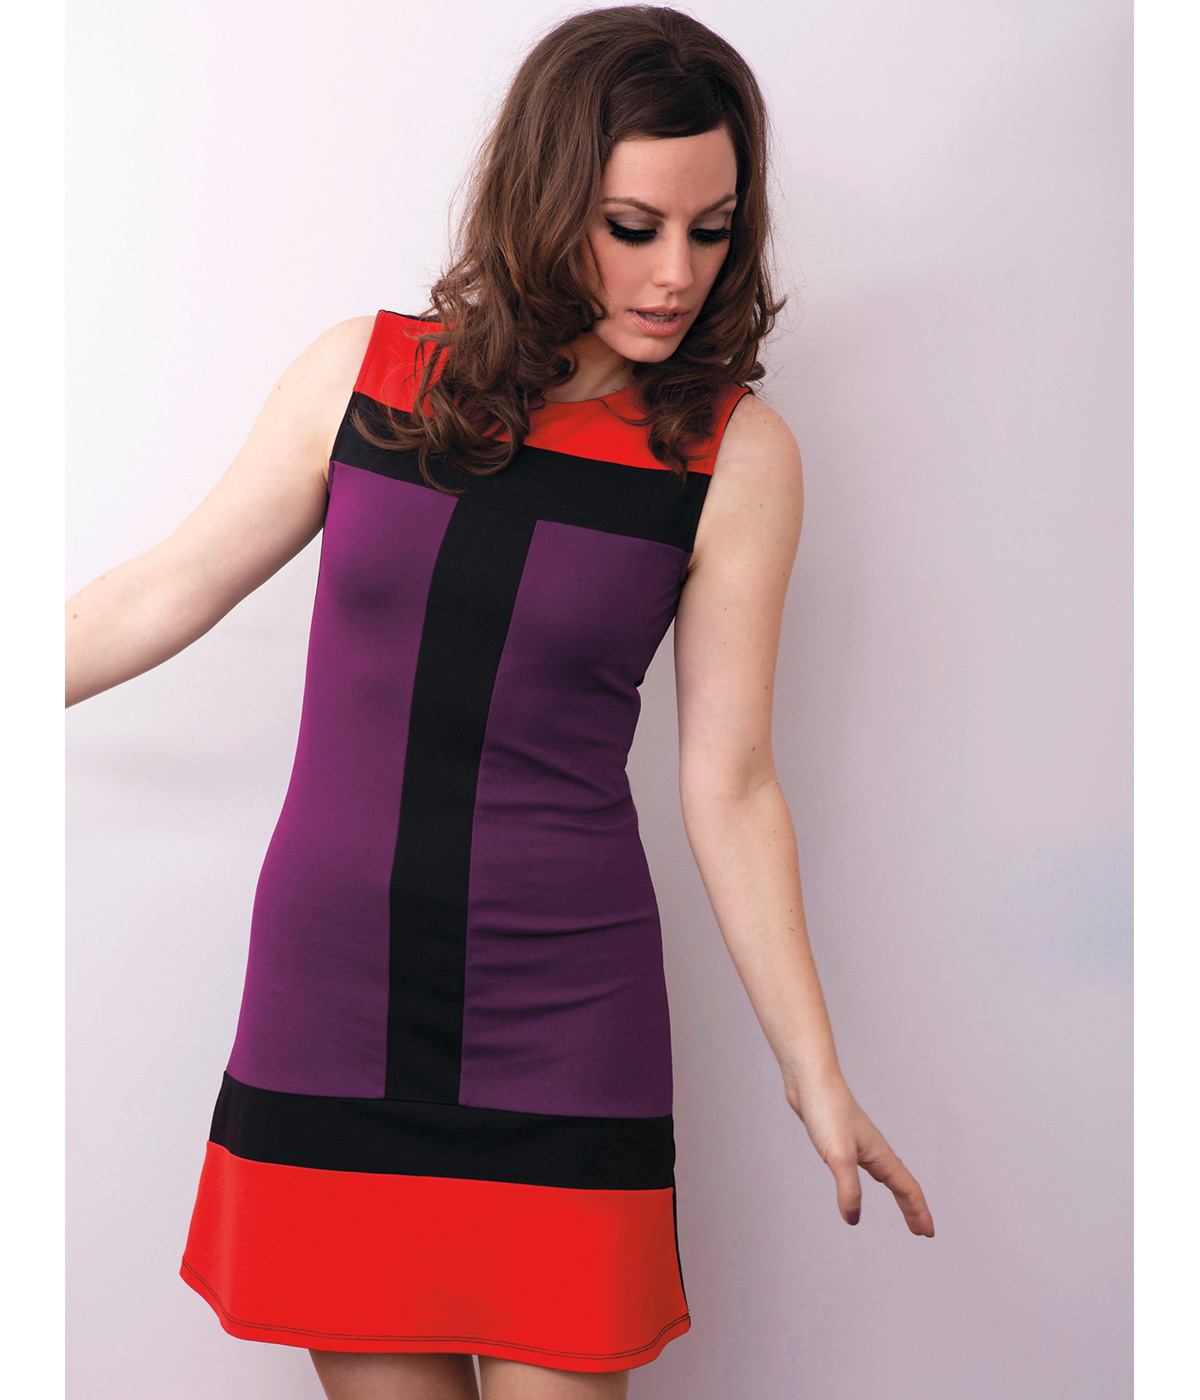 Carly MADEMOISELLE YEYE 60s Mod Colour Block Dress